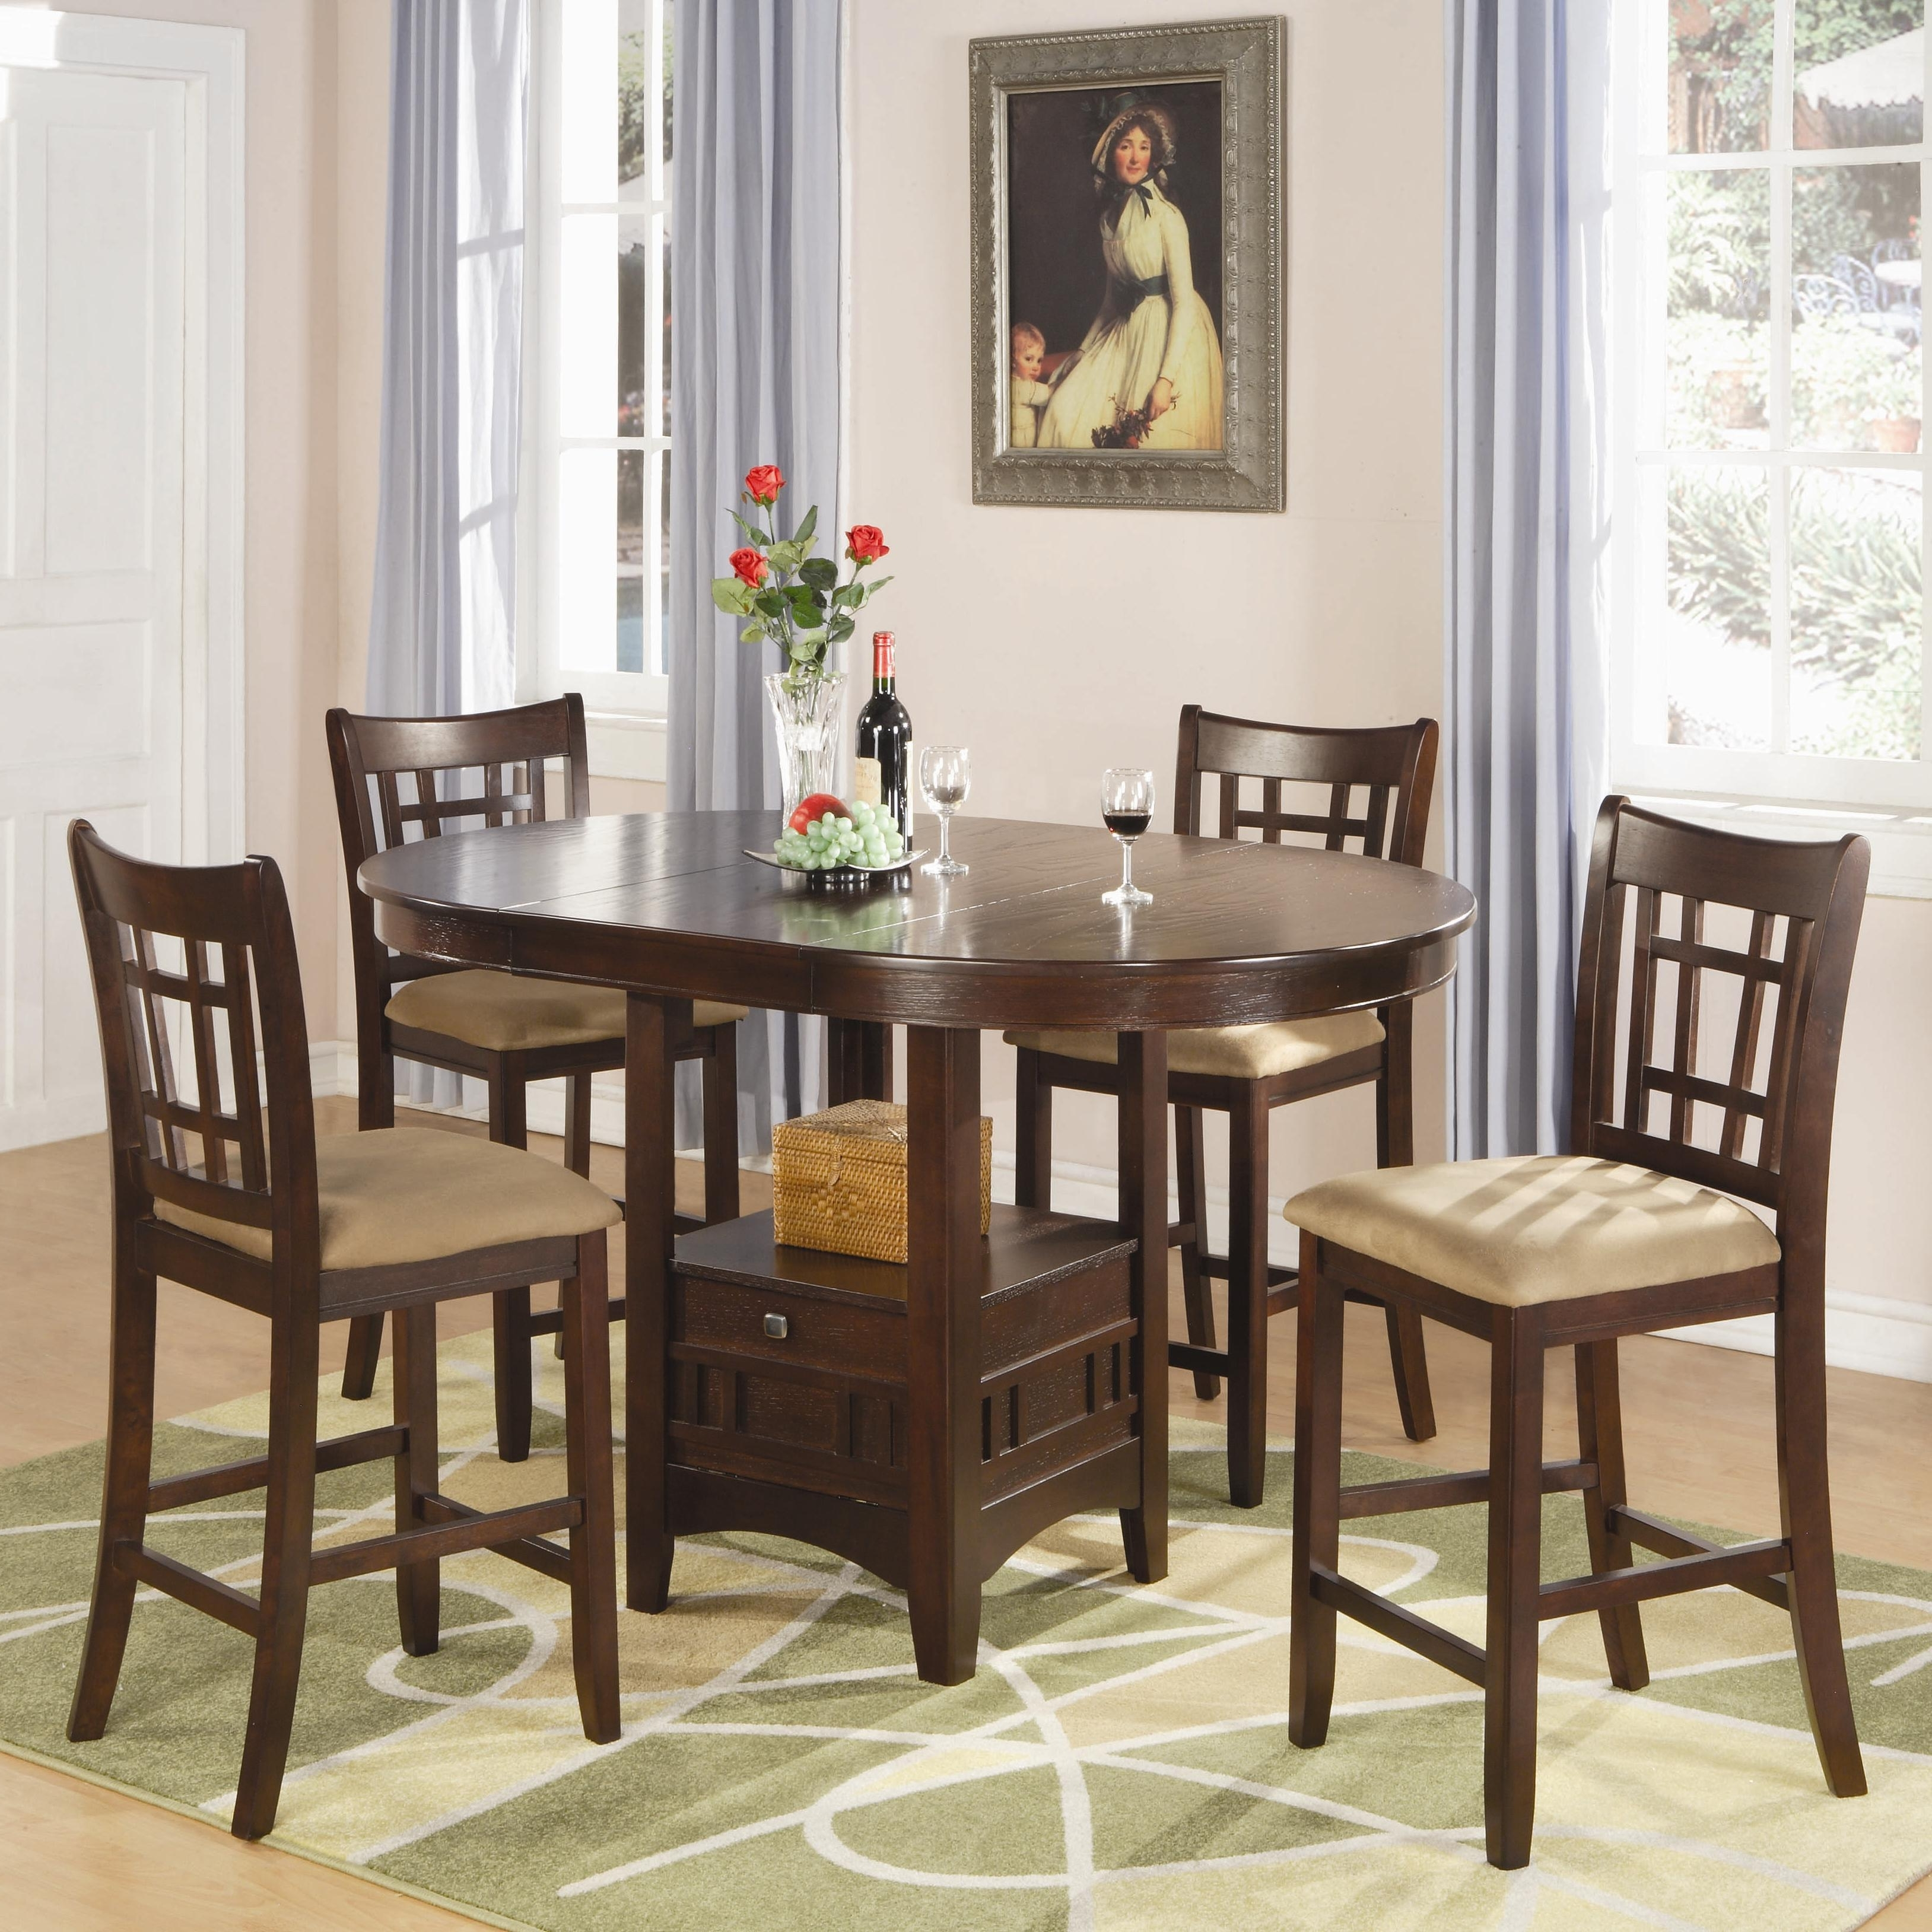 Sofa Chairs With Dining Table Throughout Widely Used Coaster – Find A Local Furniture Store With Coaster Fine Furniture (View 17 of 20)